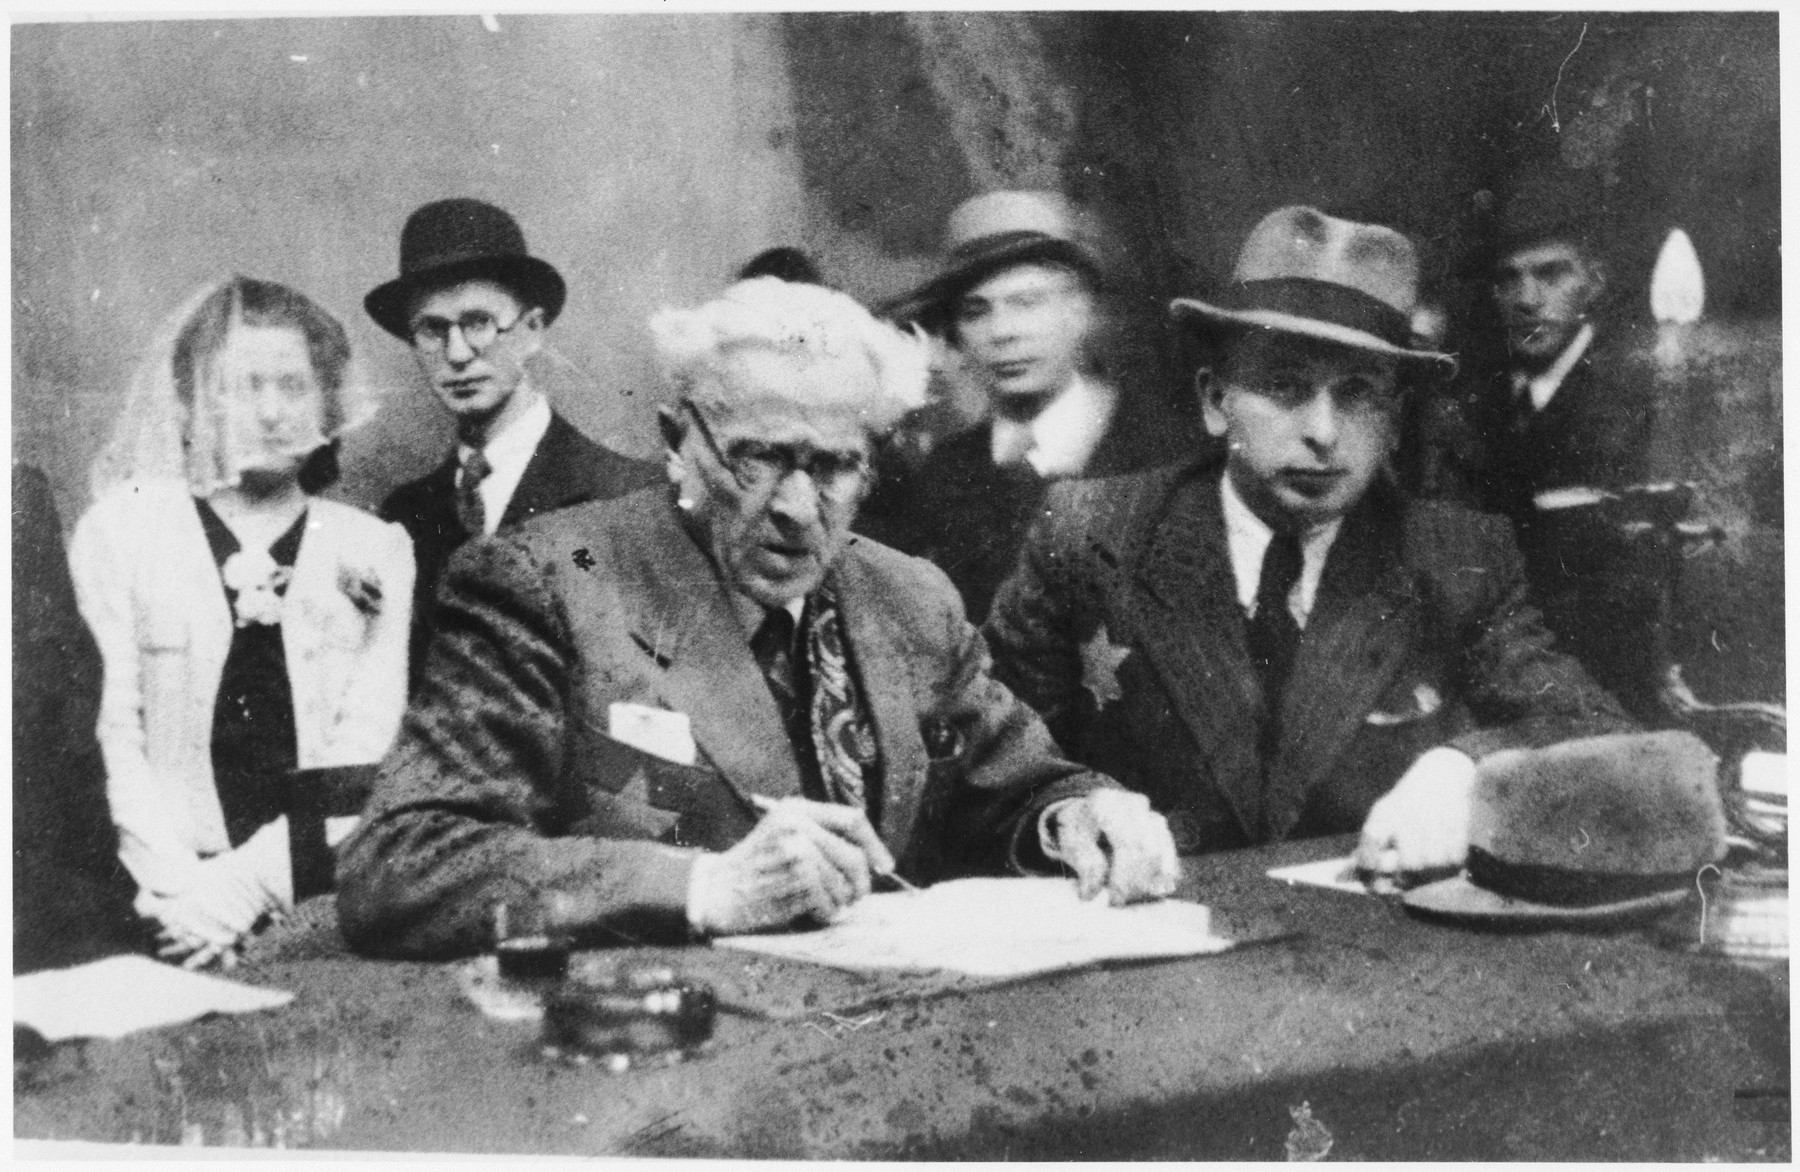 Jewish council chairman Mordechai Chaim Rumkowski signs a document at a wedding in the Lodz ghetto.  Pictured on the right is Sucher Erlich.  He survived the Holocaust.